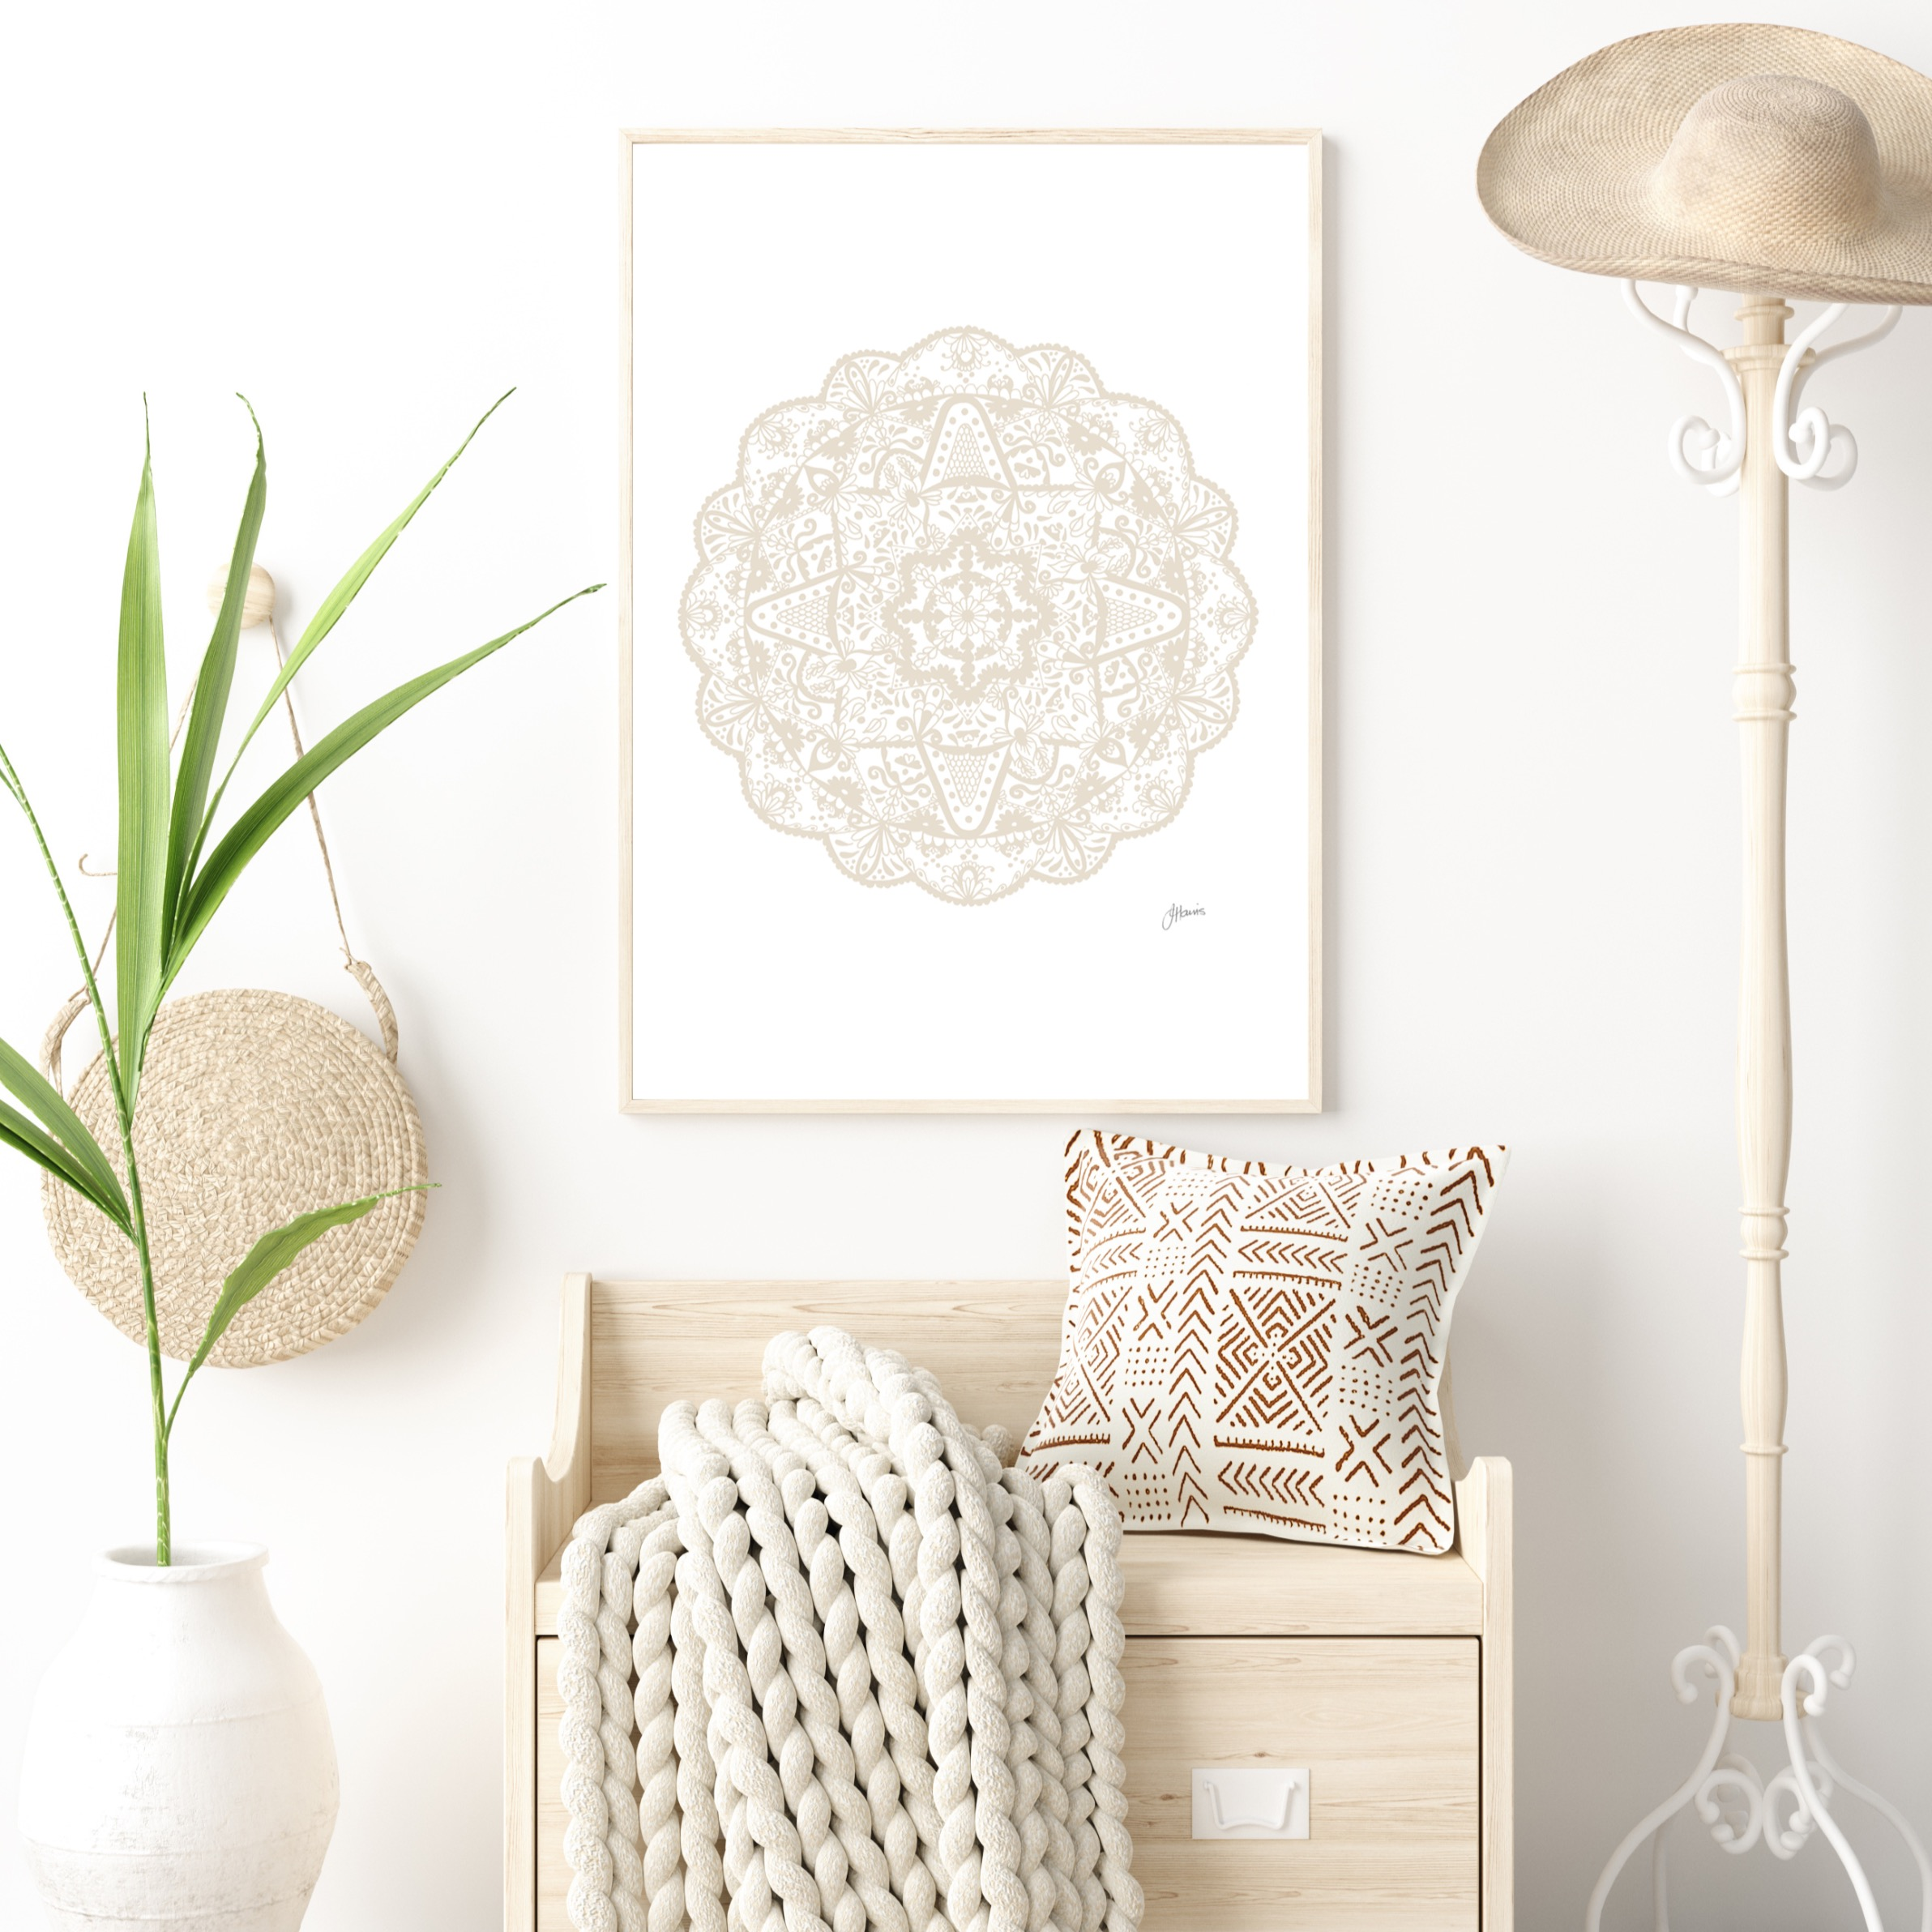 Marrakesh Decor in Ivory